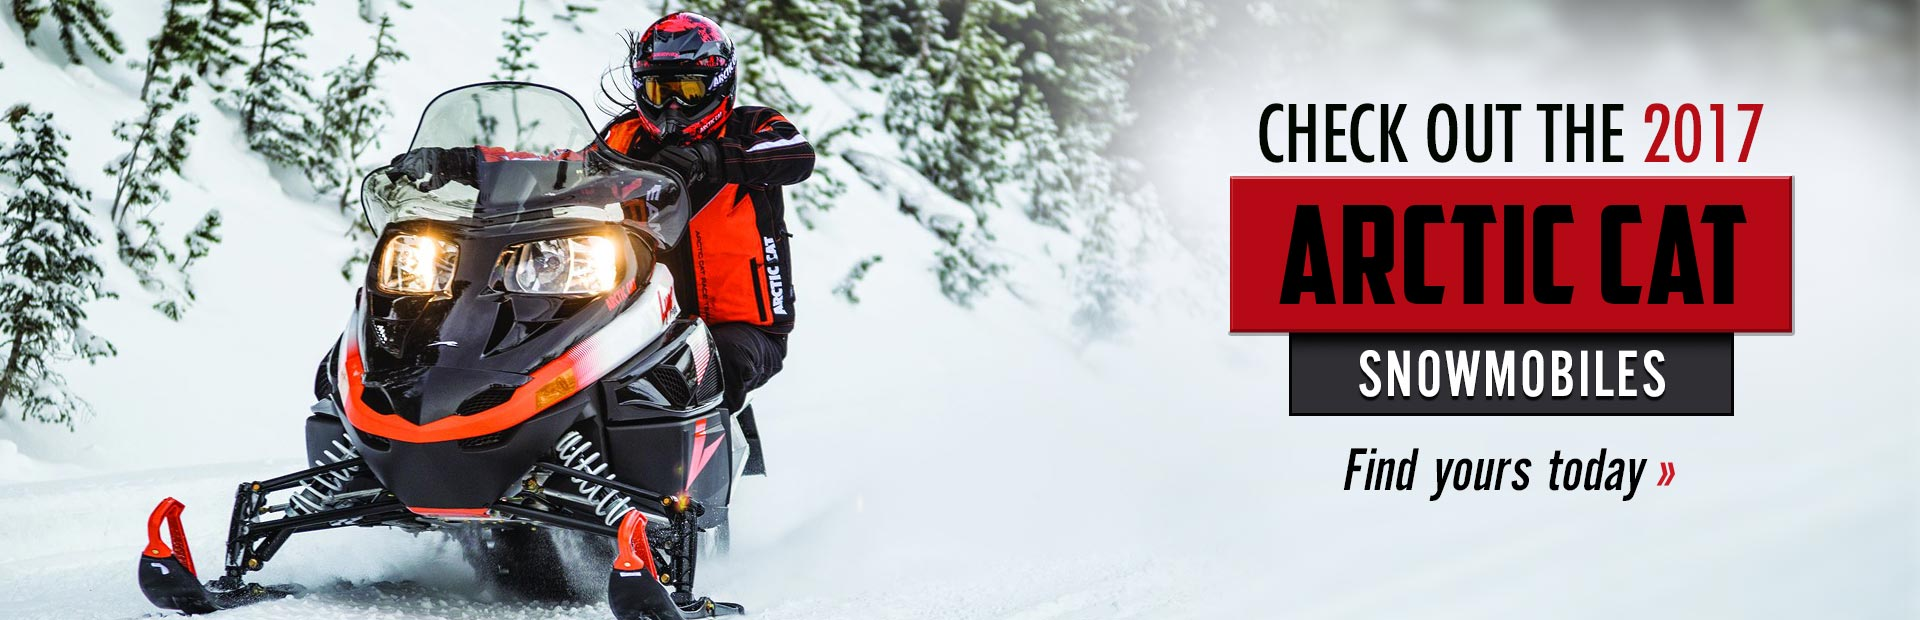 2017 Arctic Cat Snowmobiles: Click here to view the lineup.